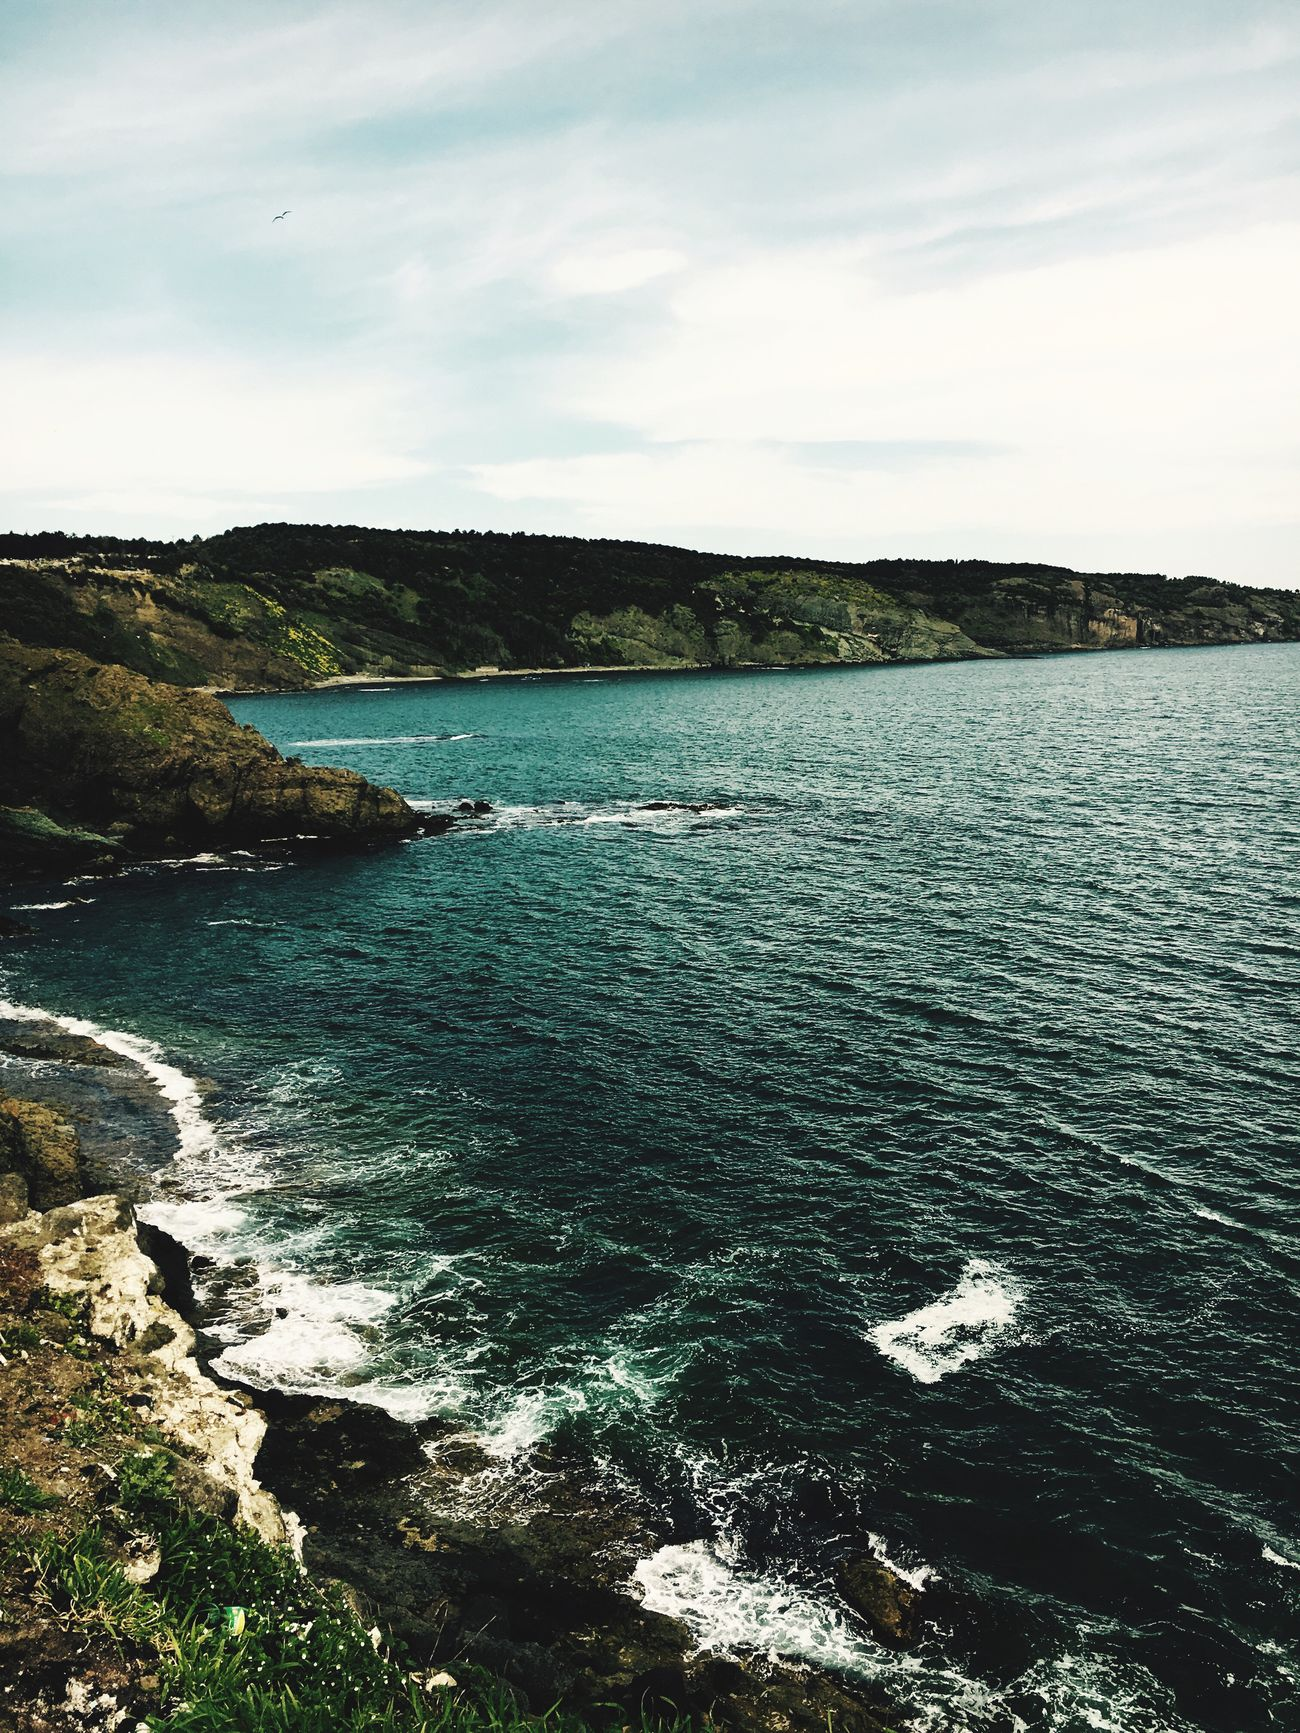 Heaven ? EyeEmNewHere Nature Sea Beauty In Nature Scenics Tranquil Scene Sky No People Outdoors Tranquility Day Cliff The Secret Spaces The Great Outdoors - 2017 EyeEm Awards